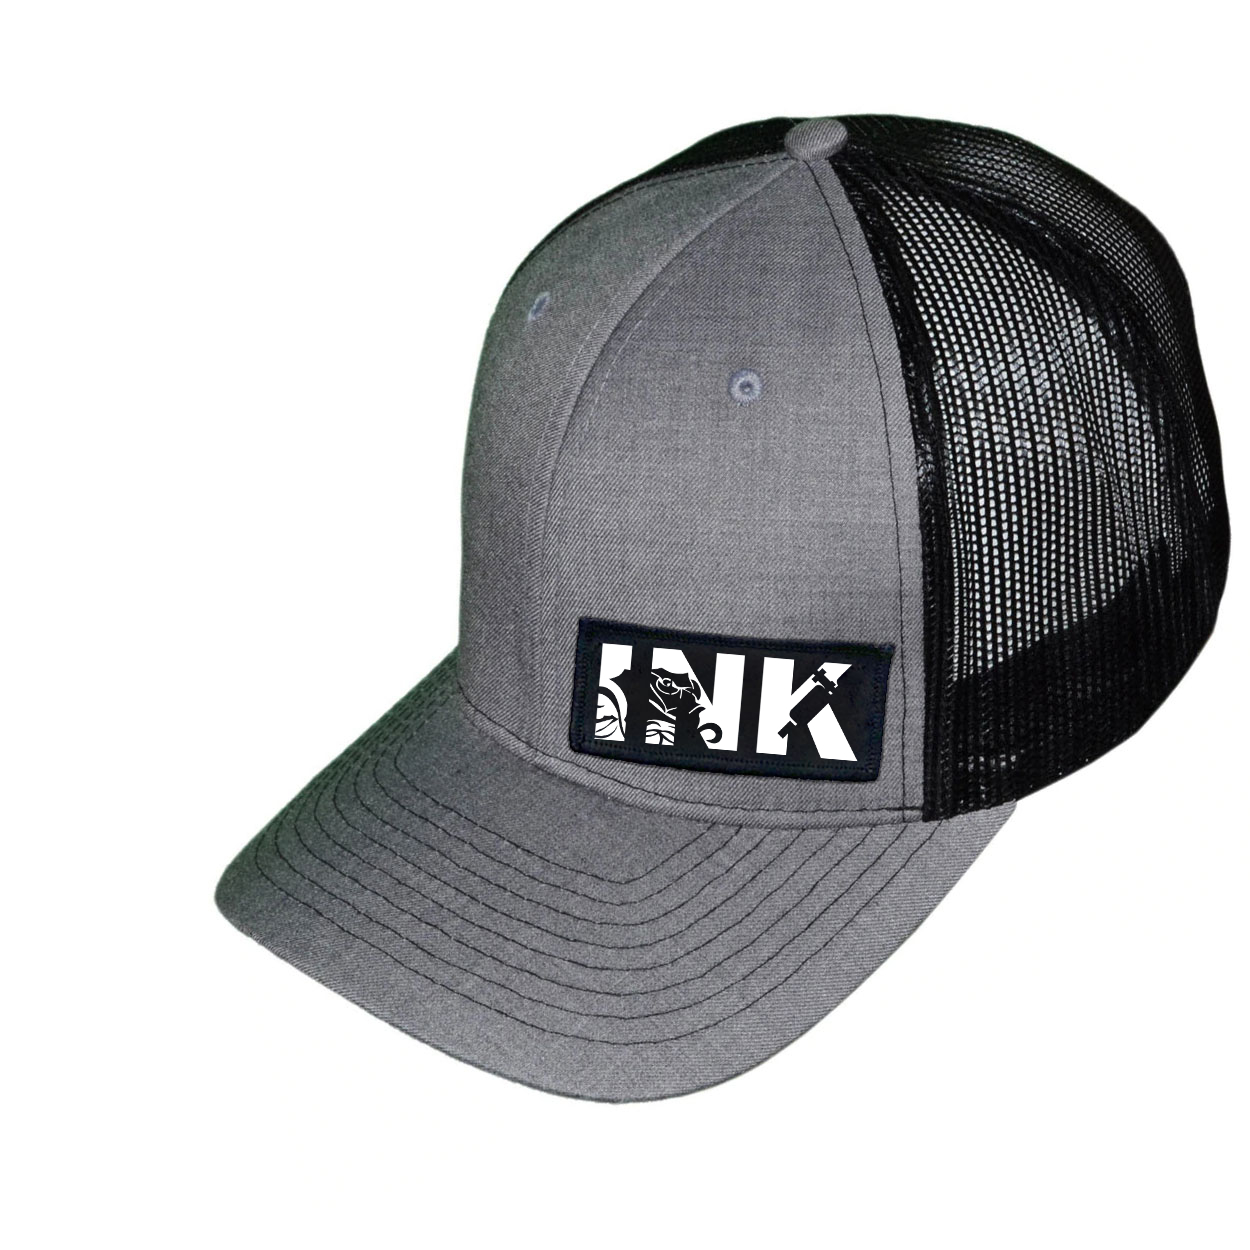 Ink Tattoo Logo Night Out Woven Patch Snapback Trucker Hat Heather Gray/Black (White Logo)